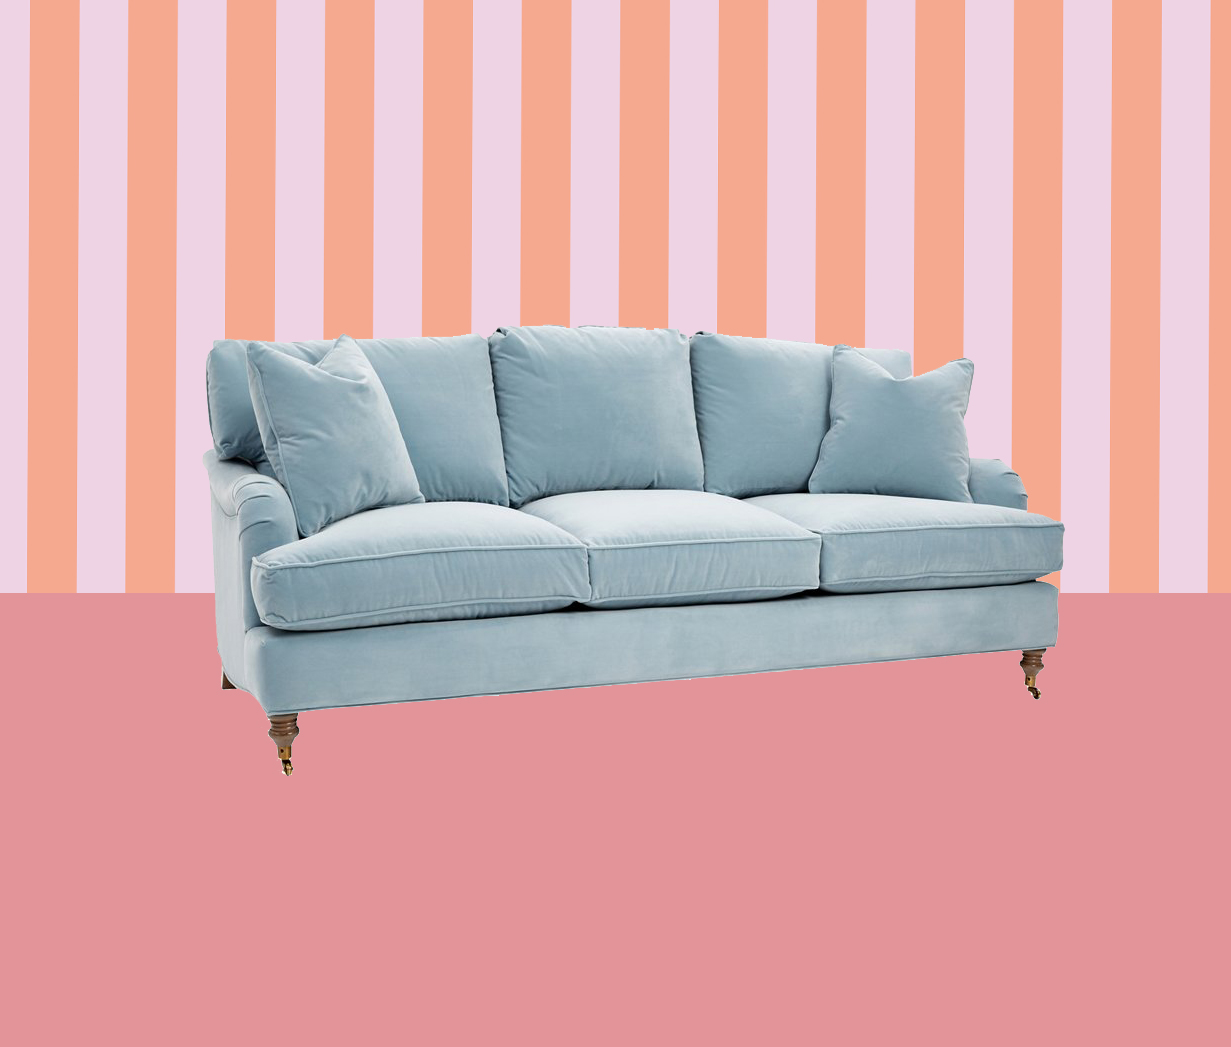 Stain Resistant and Easy-to-Clean Sofa